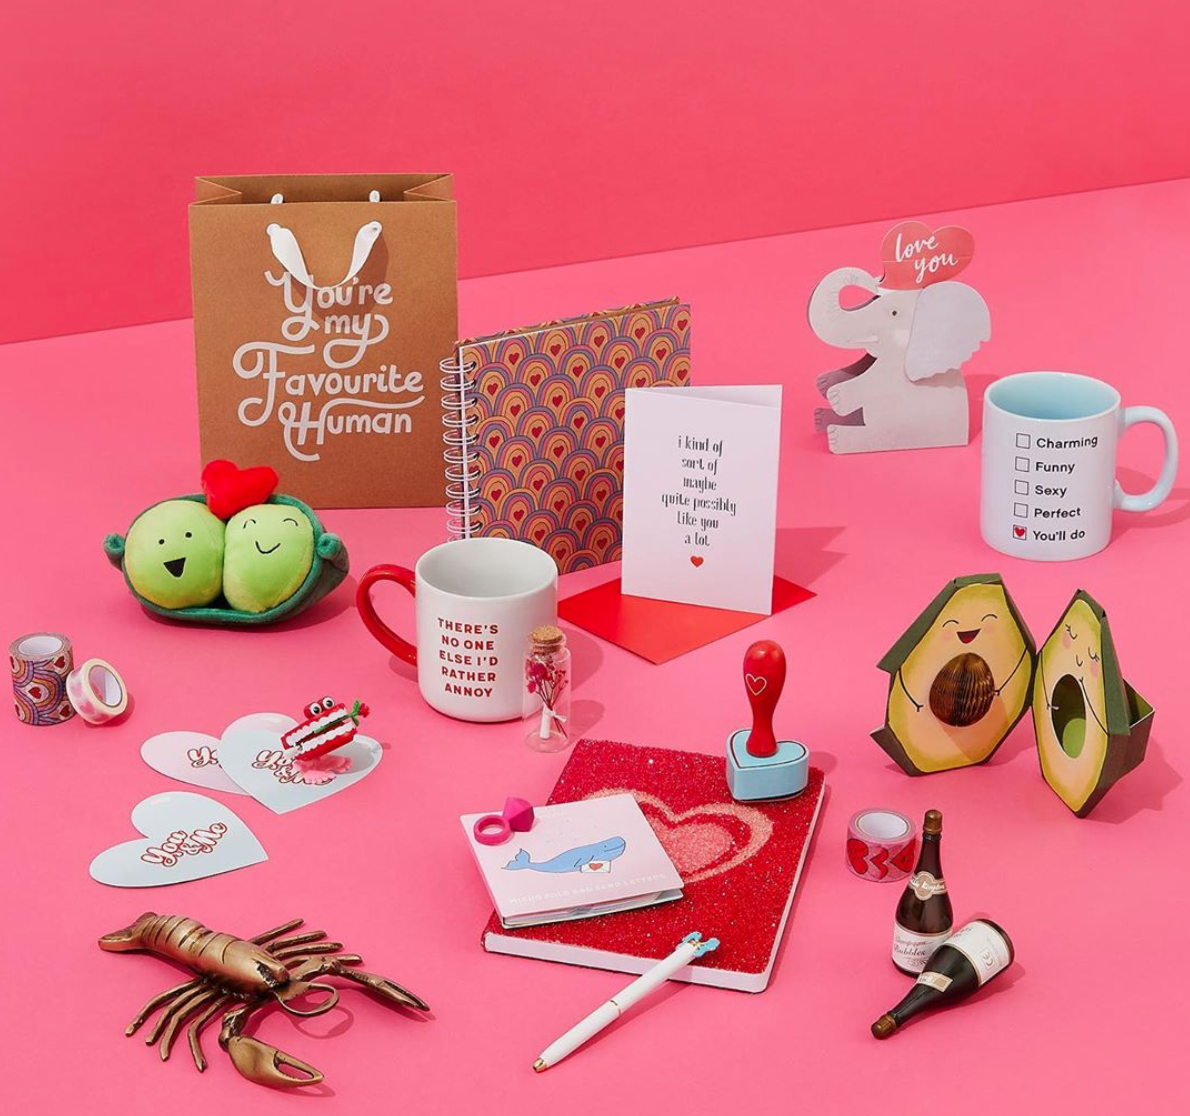 Above: Paperchase's Valentine's selection and marketing was in tune with its move to embrace a 'friendship' send.